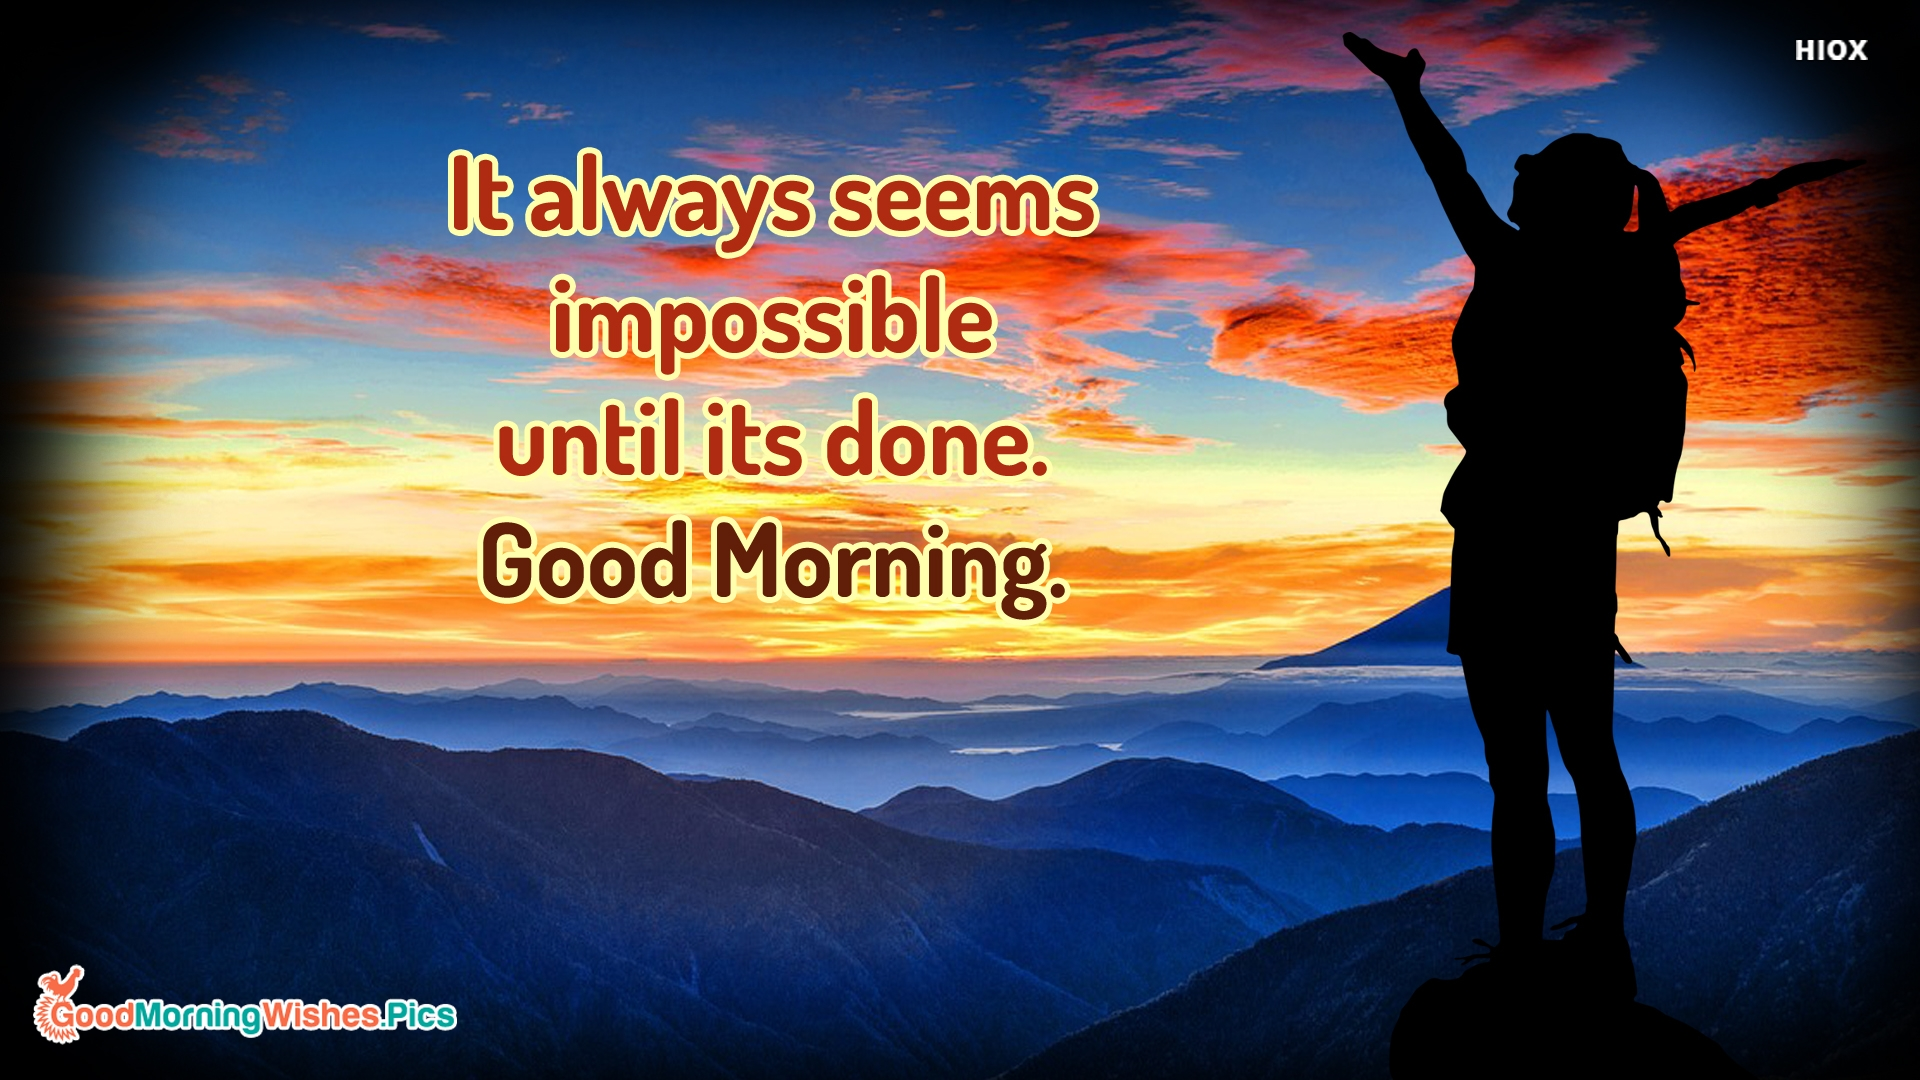 It Always Seems Impossible Until Its Done. Good Morning.